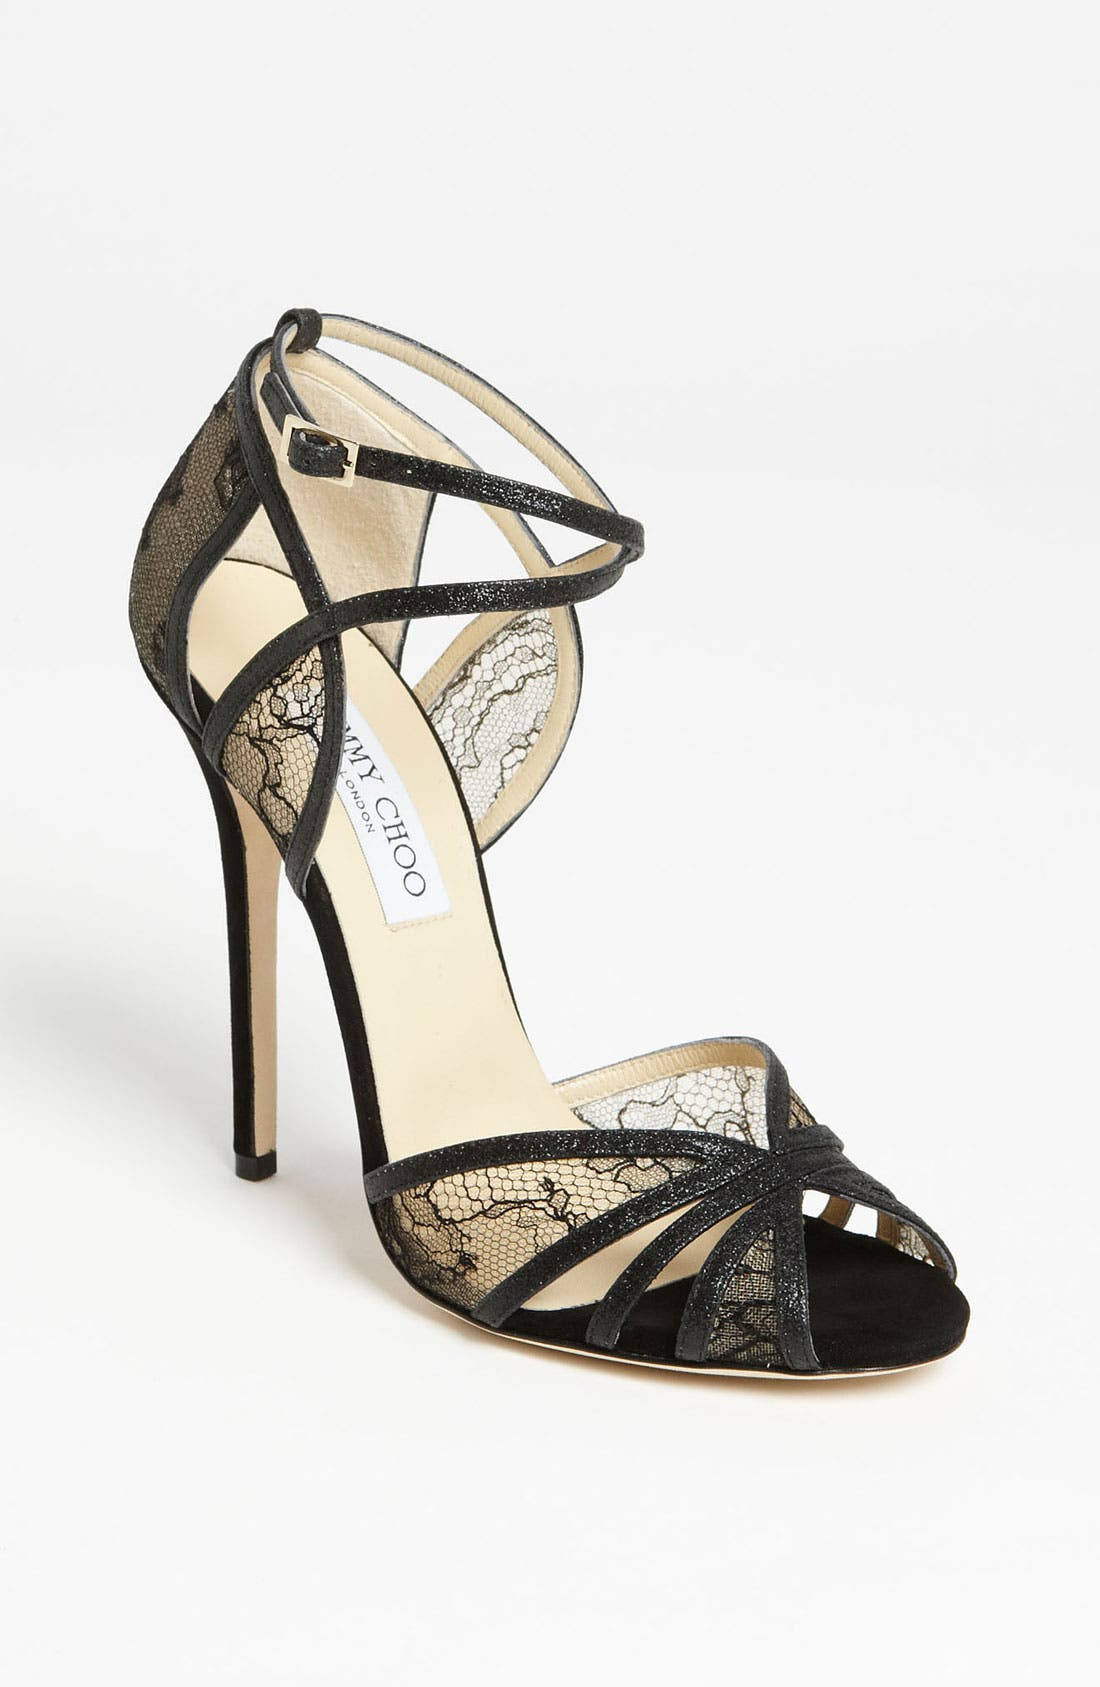 Main Image - Jimmy Choo 'Fitch' Sandal